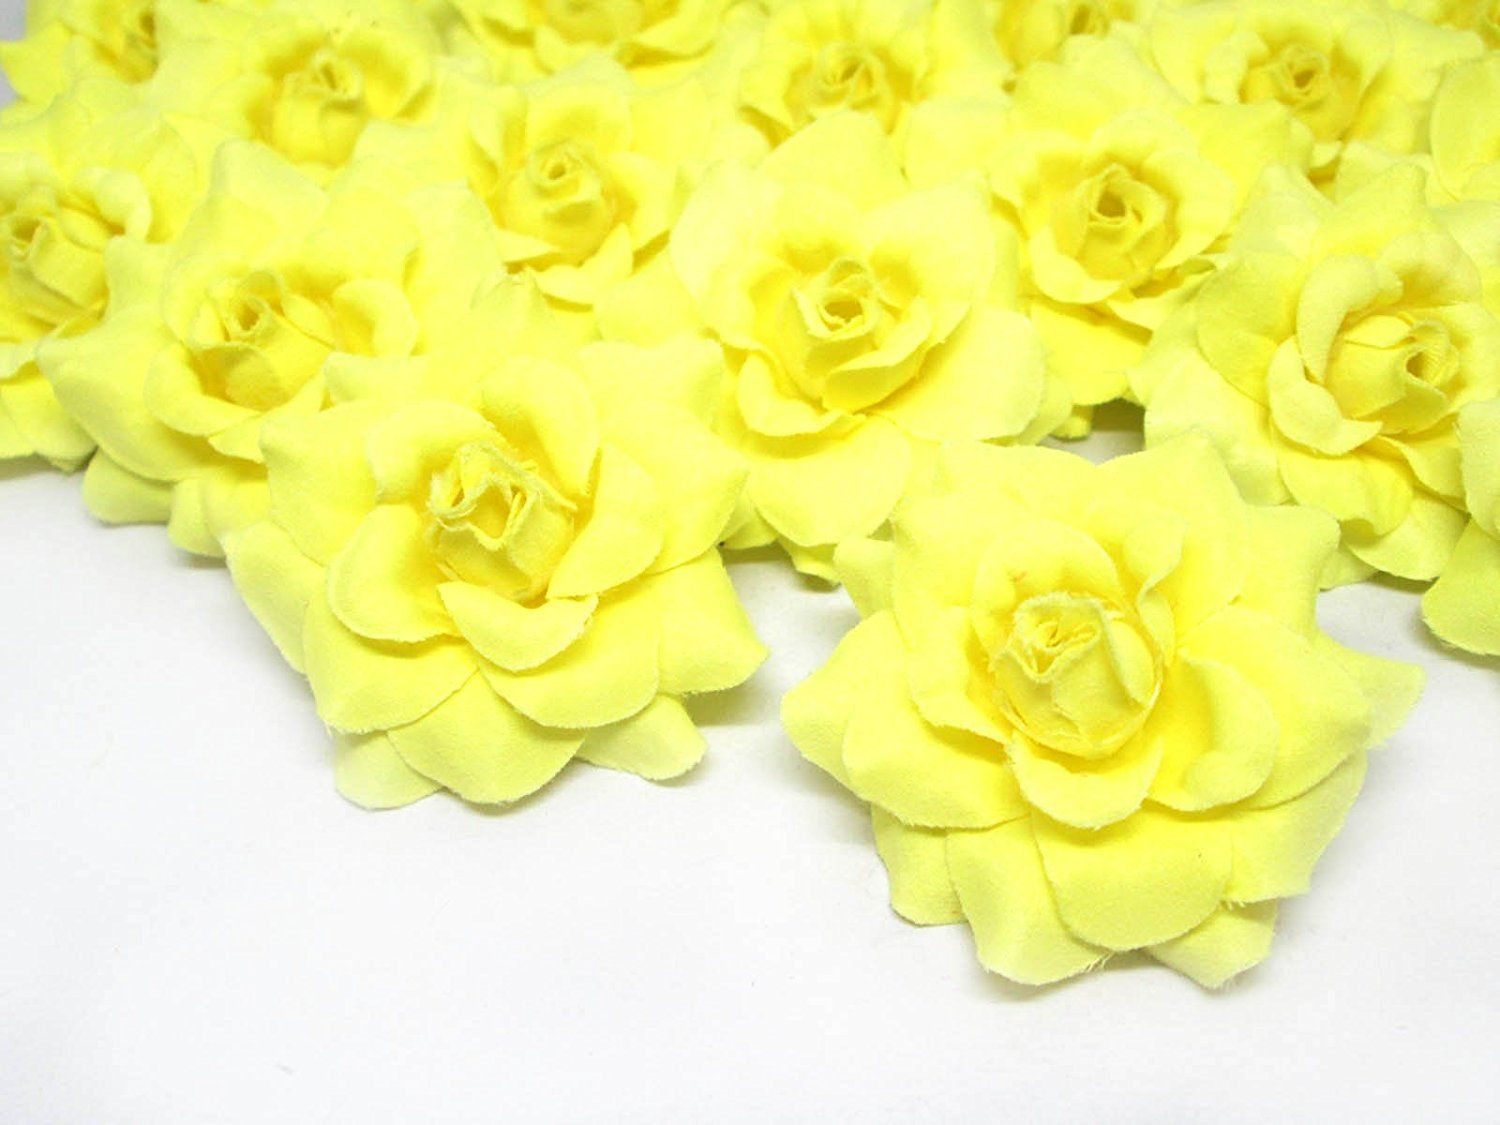 24 Silk Light Yellow Roses Flower Head 175 Artificial Flowers